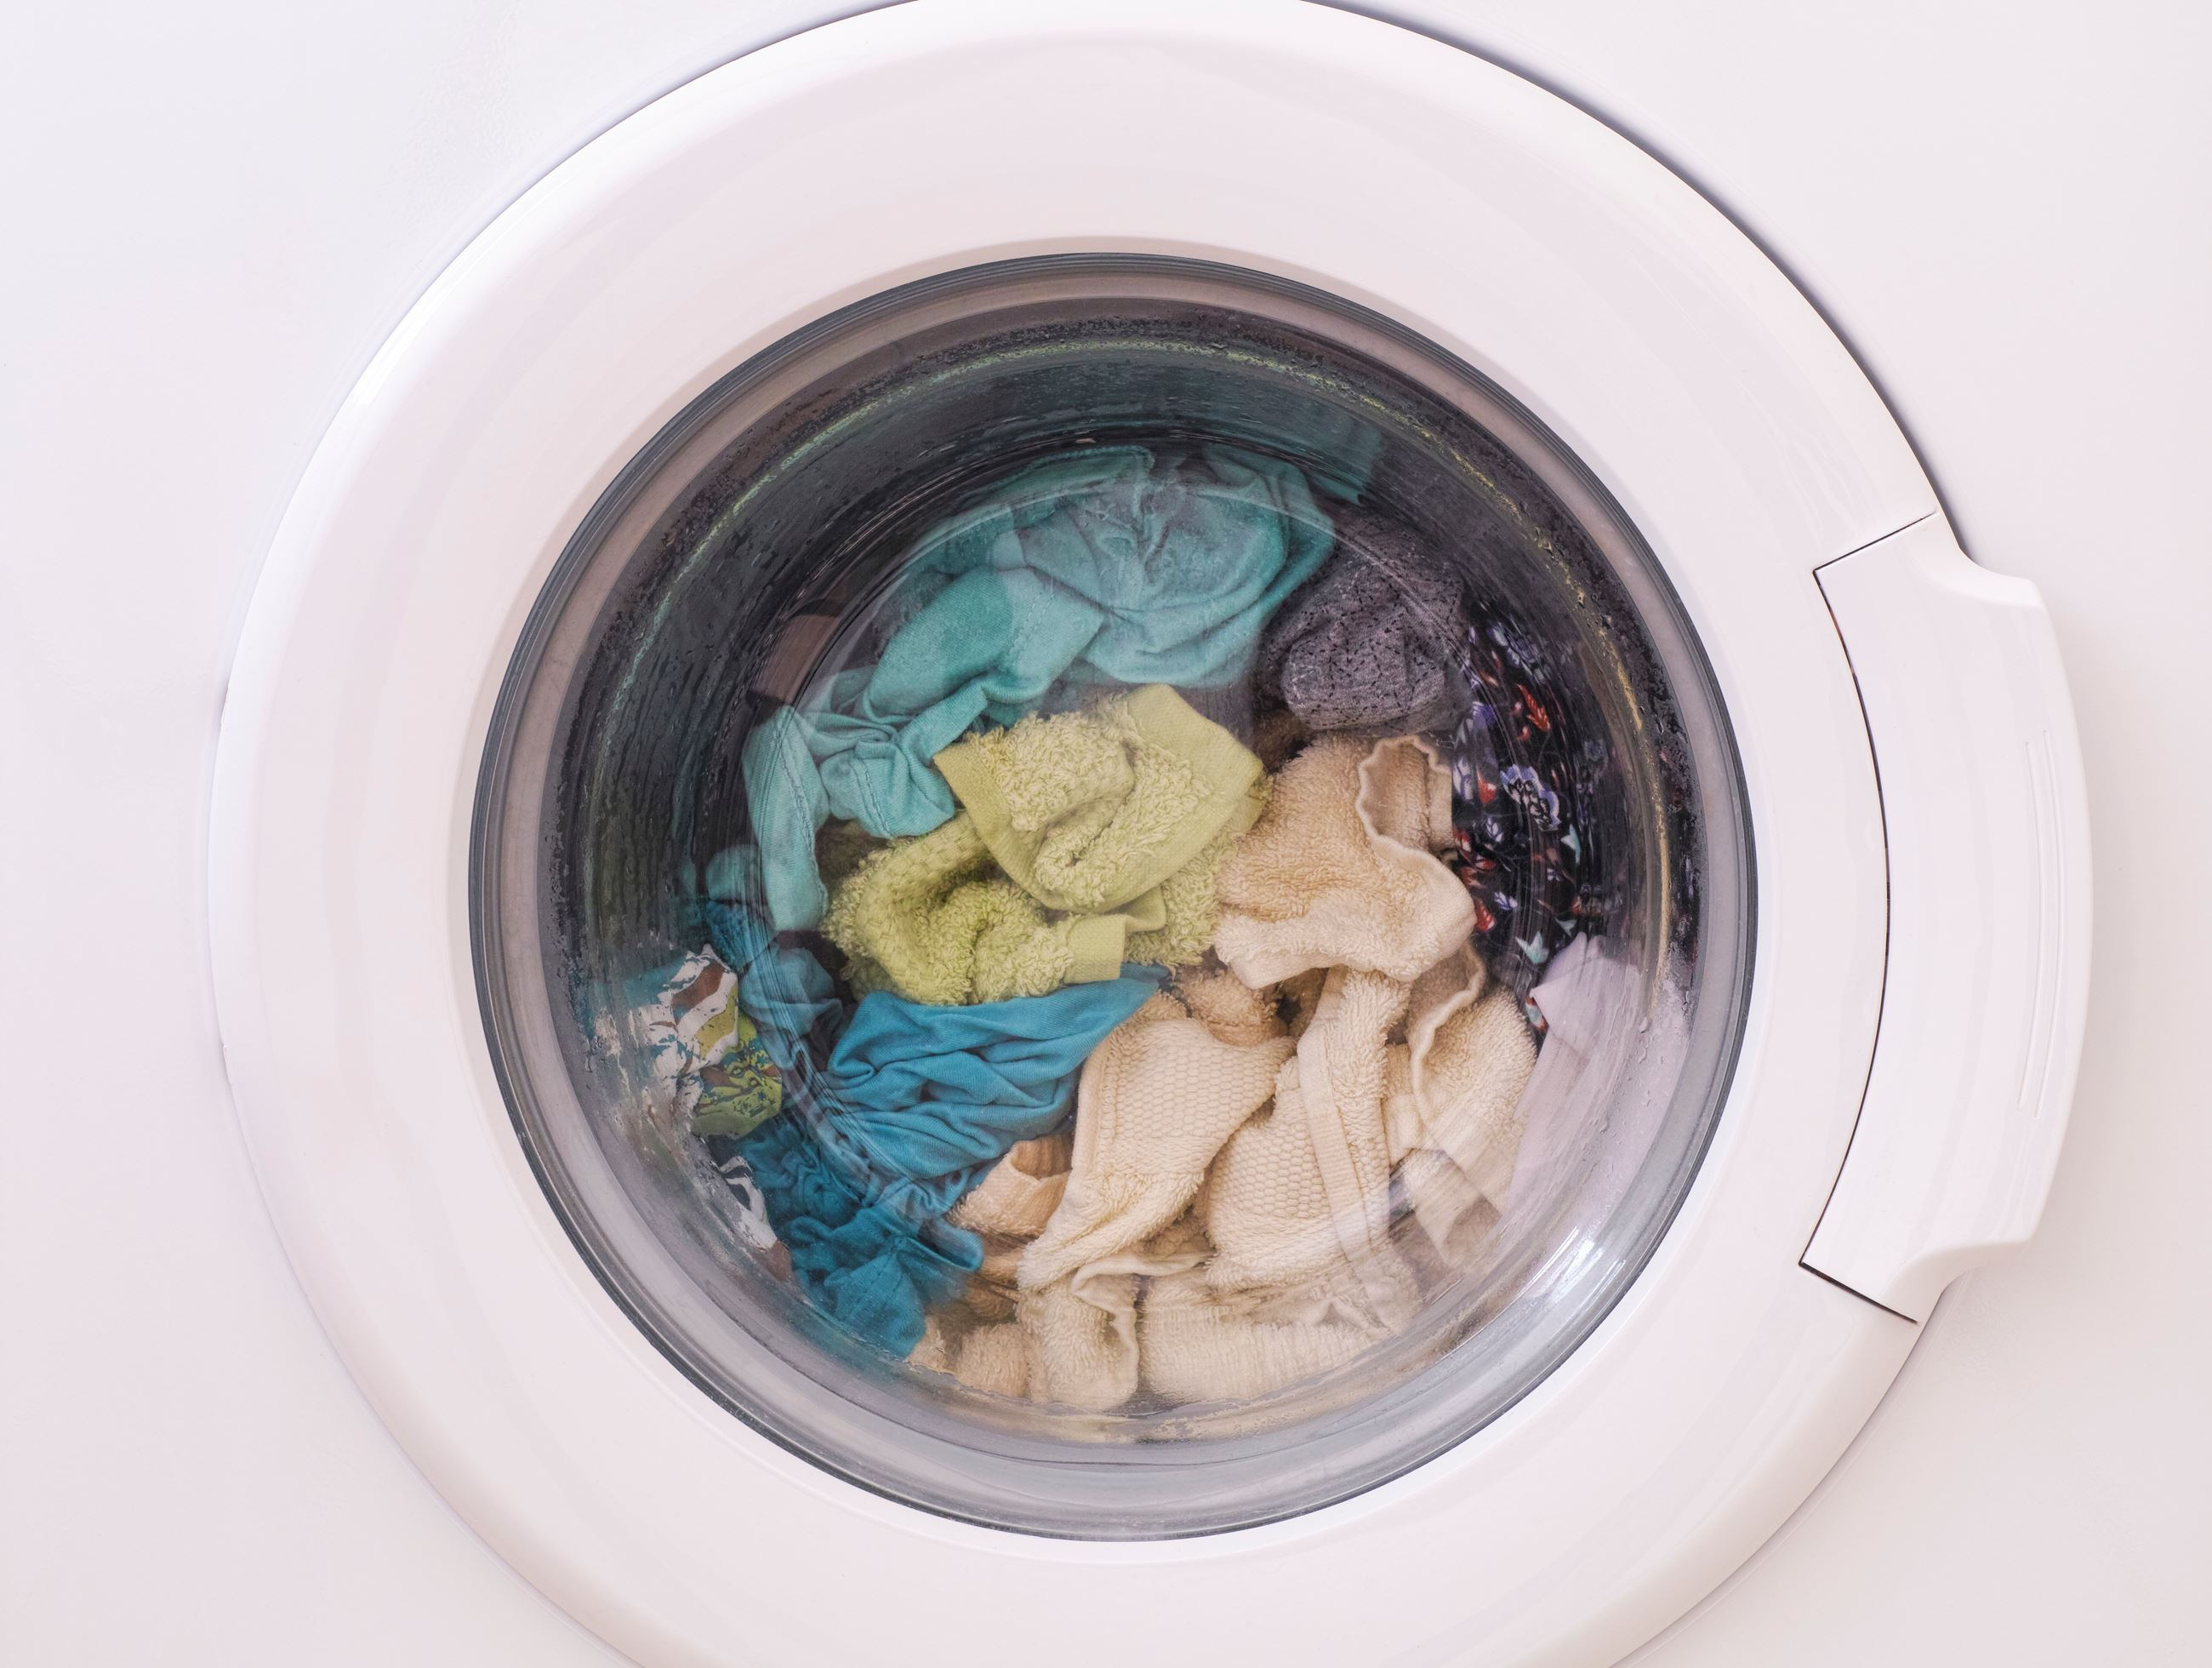 Full_Laundry_Load_Clothes_Spinning